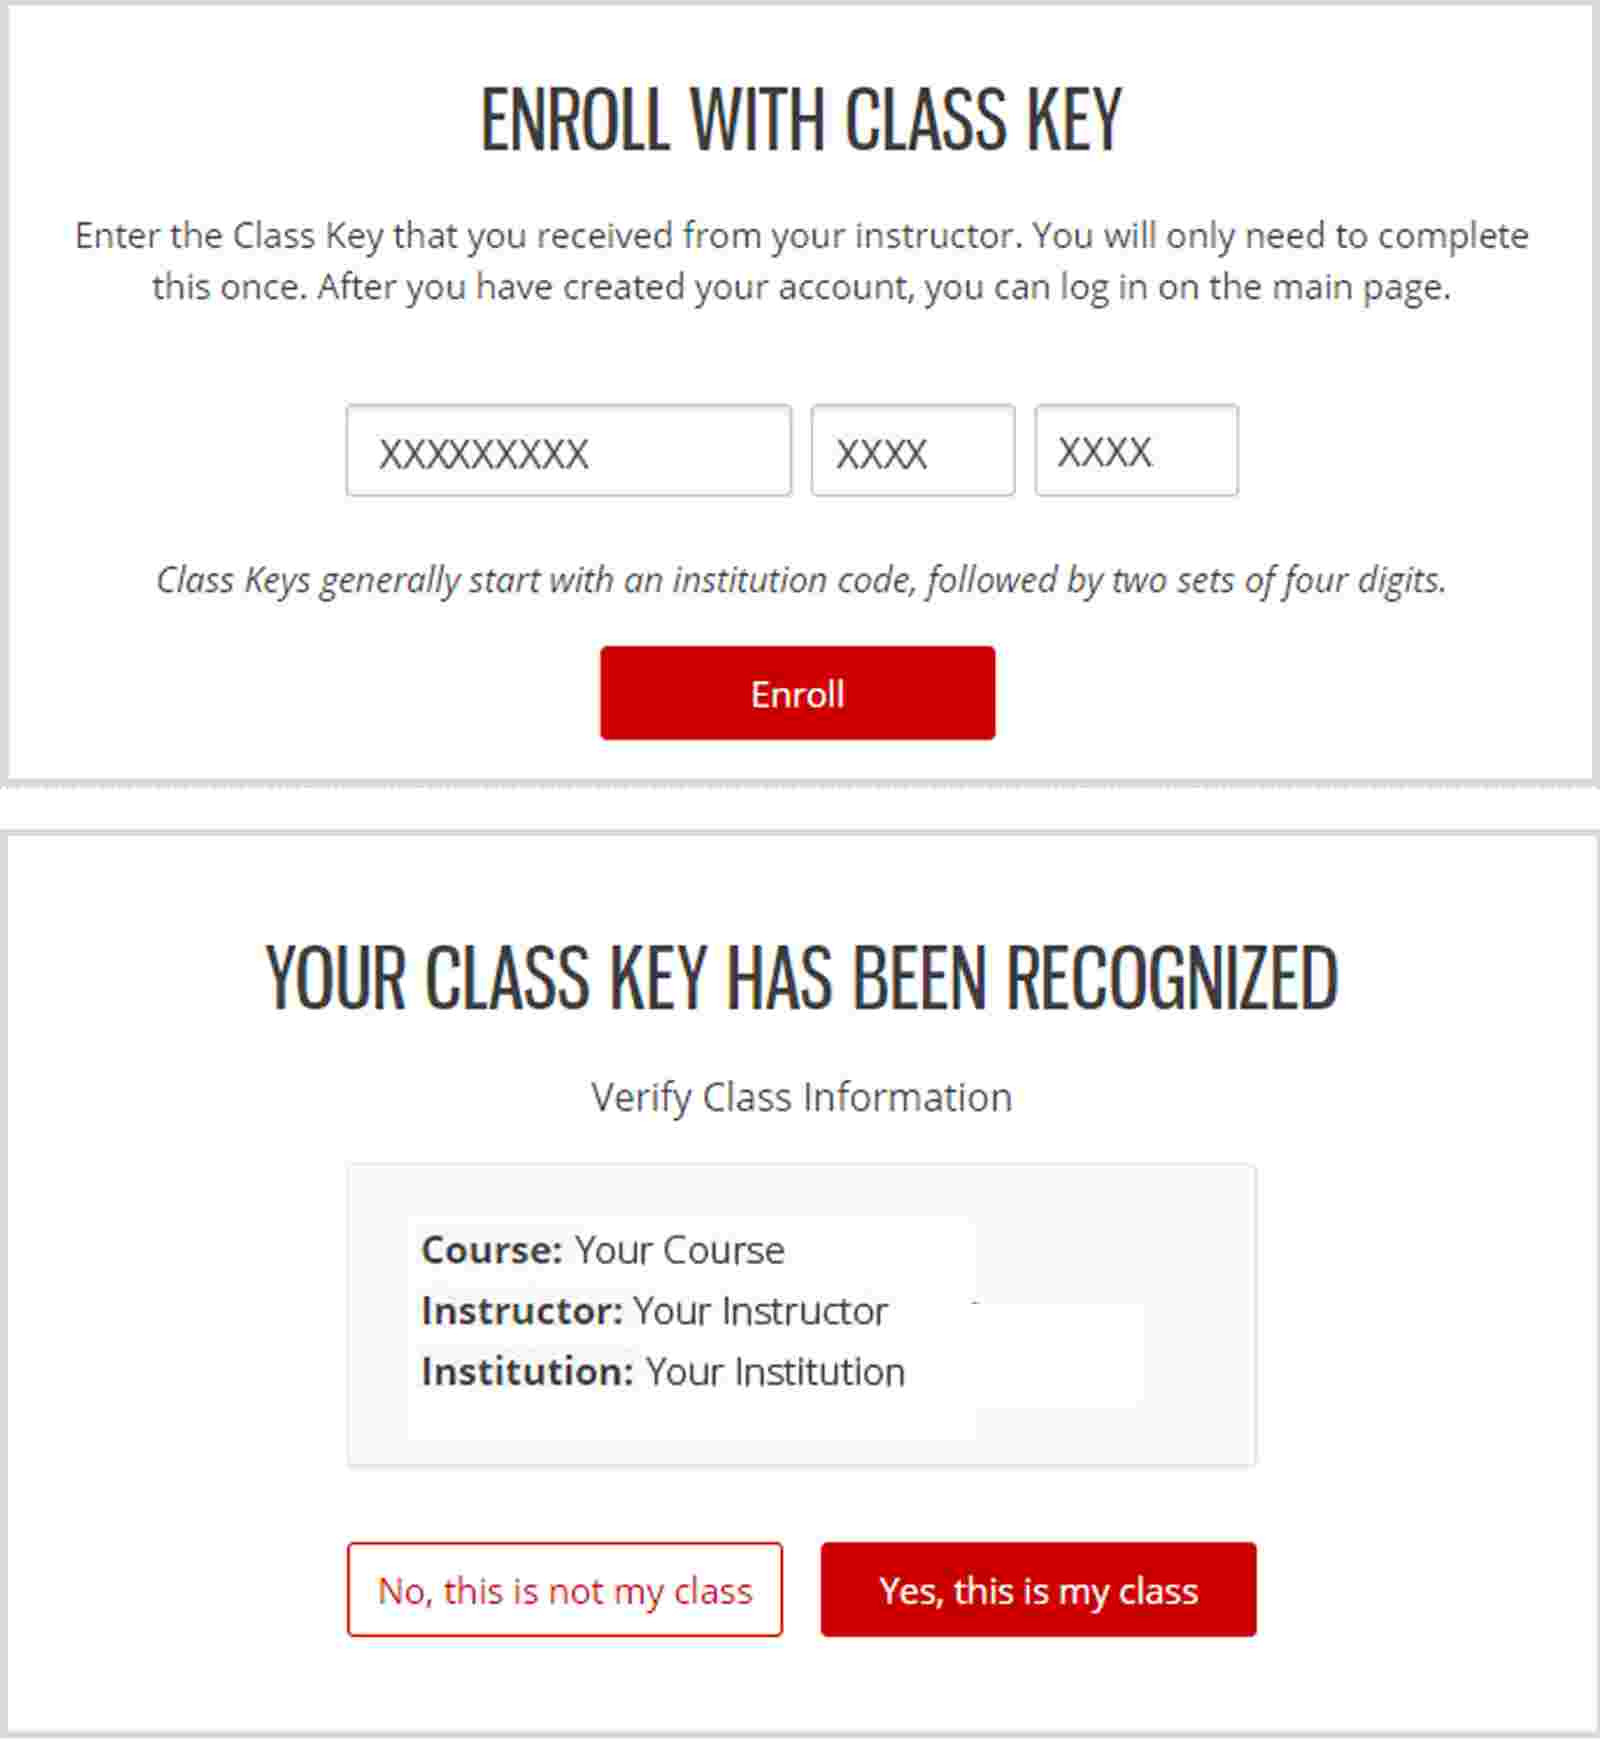 Enroll with a Class Key